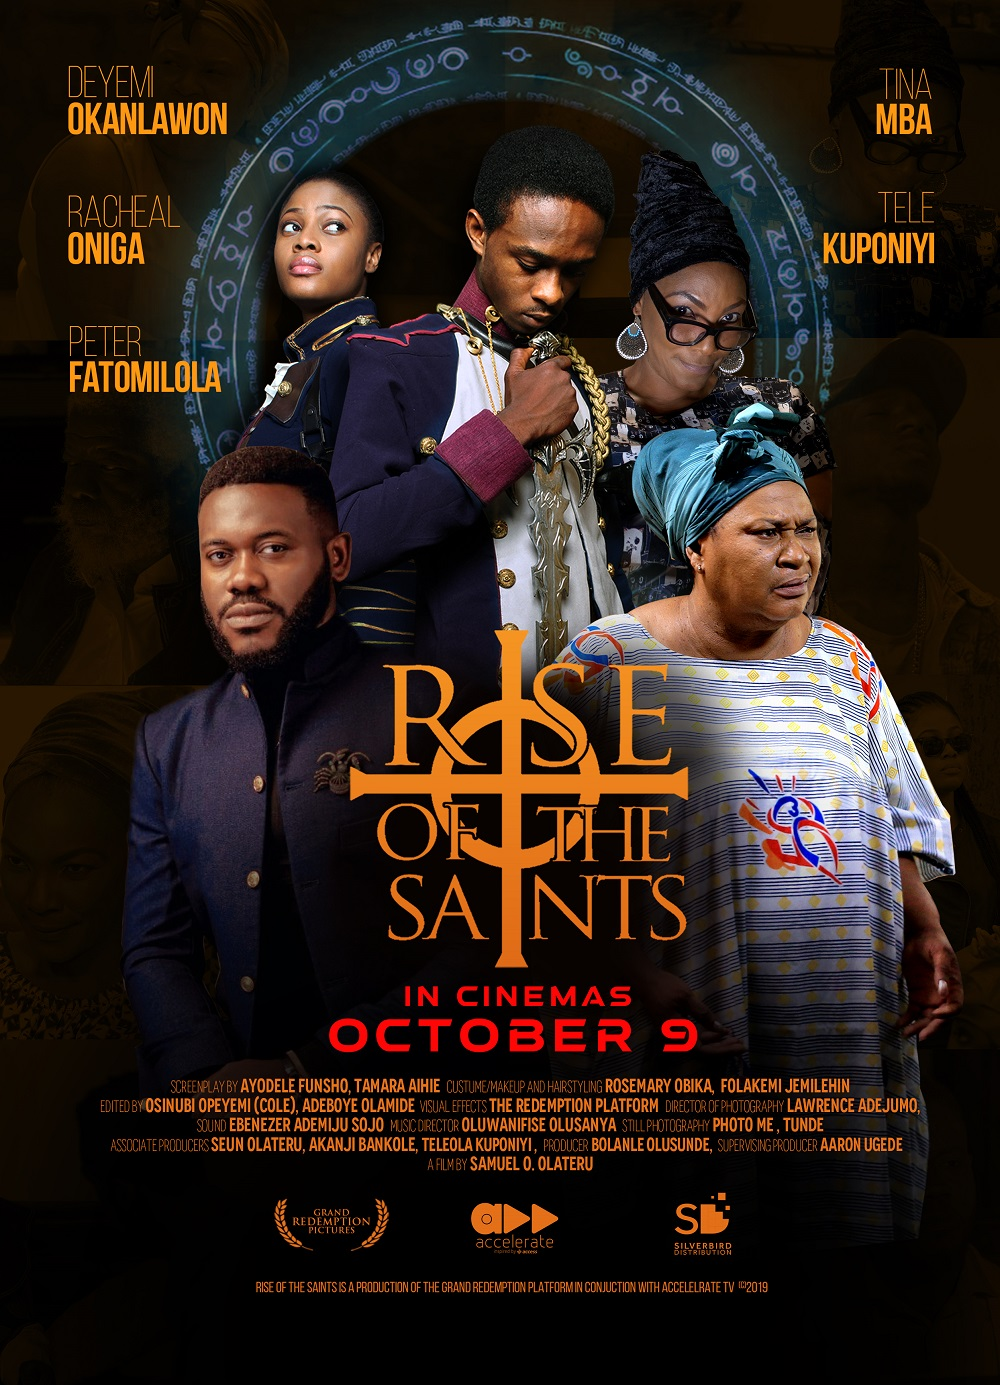 Rise Of The Saints; The Movie- Annouces October 9th As New Cinema Release Date, Drops New Trailer